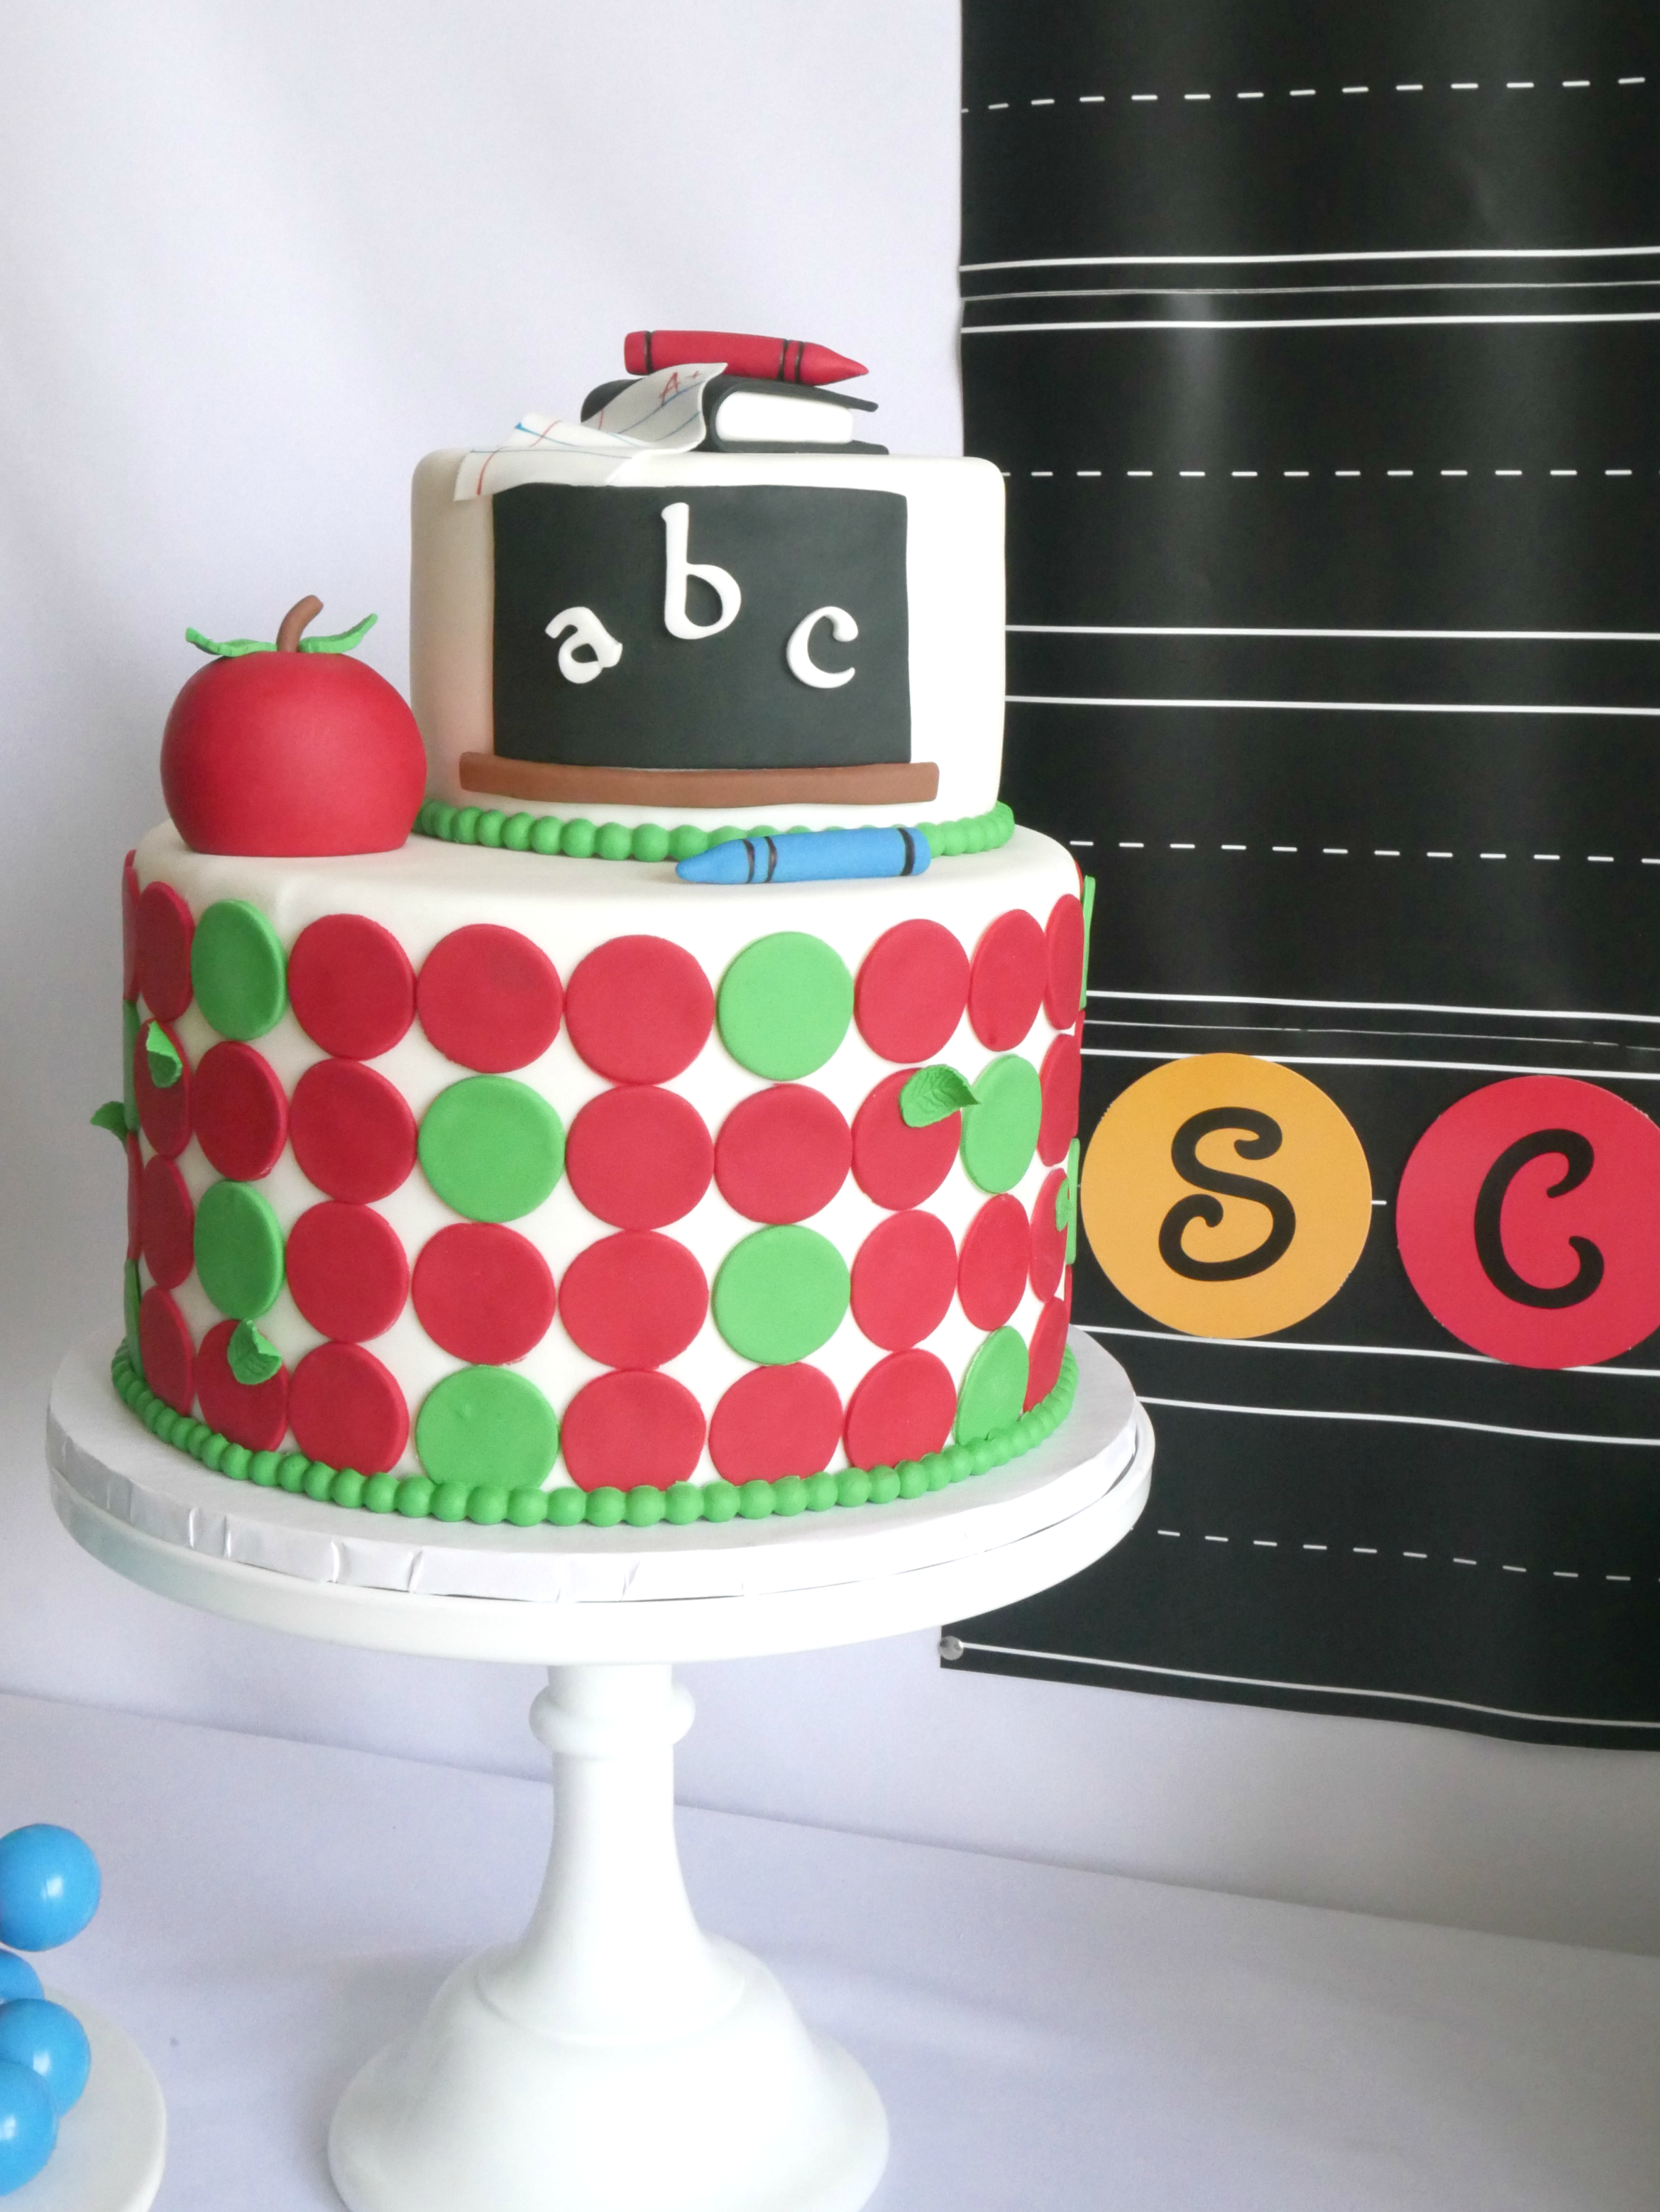 Back to School party cake with polka dots, apples, and a chalkboard theme. The cutest school themed cake with decorations made of fondant and modeling chocolate in primary colors. See all the details on Mint Event Design www.minteventdesign.com #backtoschool #backtoschoolideas #kidsparty #kidspartyideas #kidsparties #partycakes